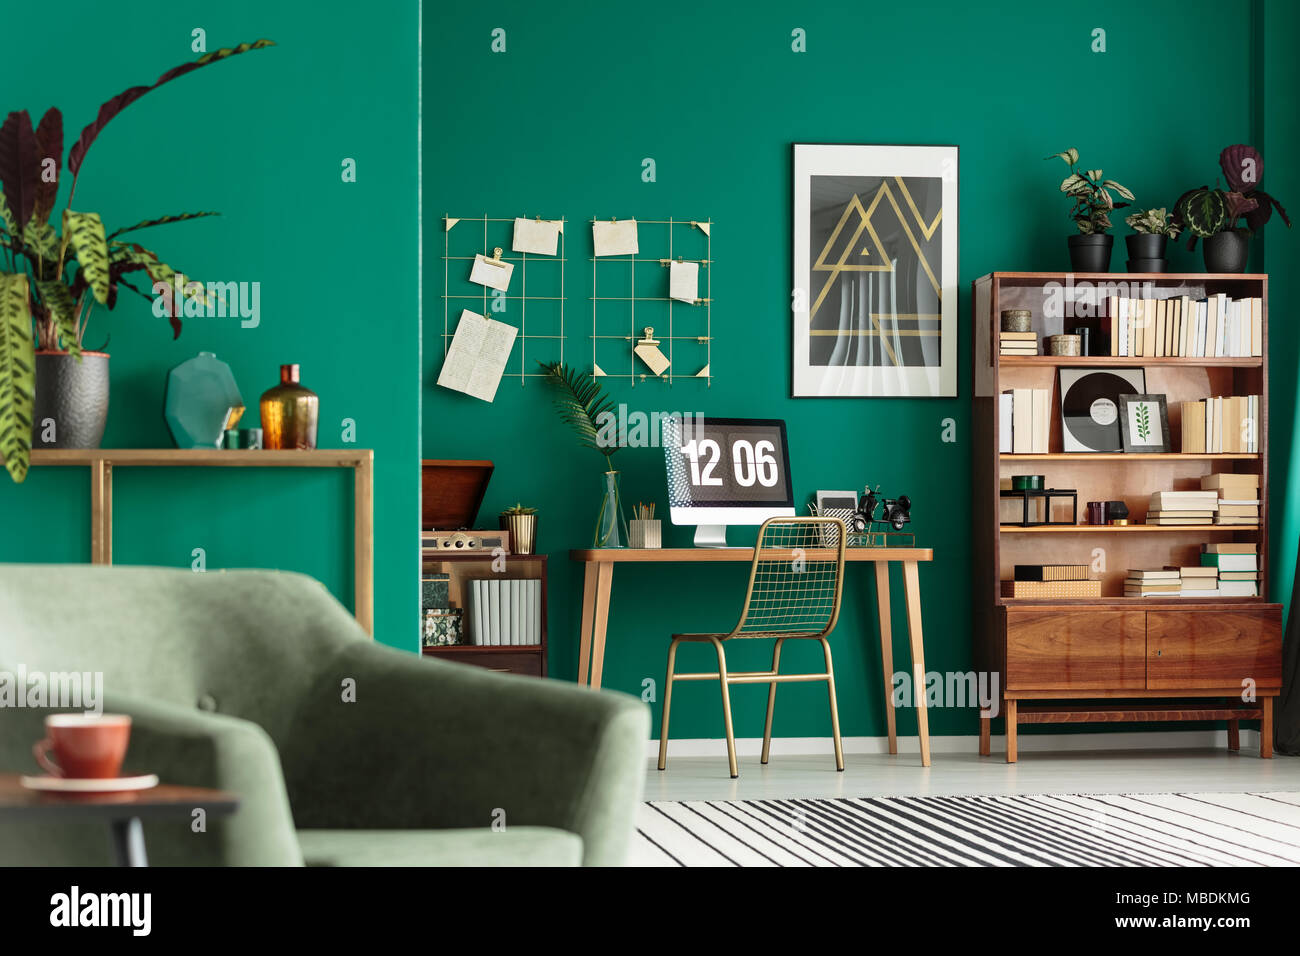 Green living room interior with books on wooden cupboard and desk for remote work - Stock Image